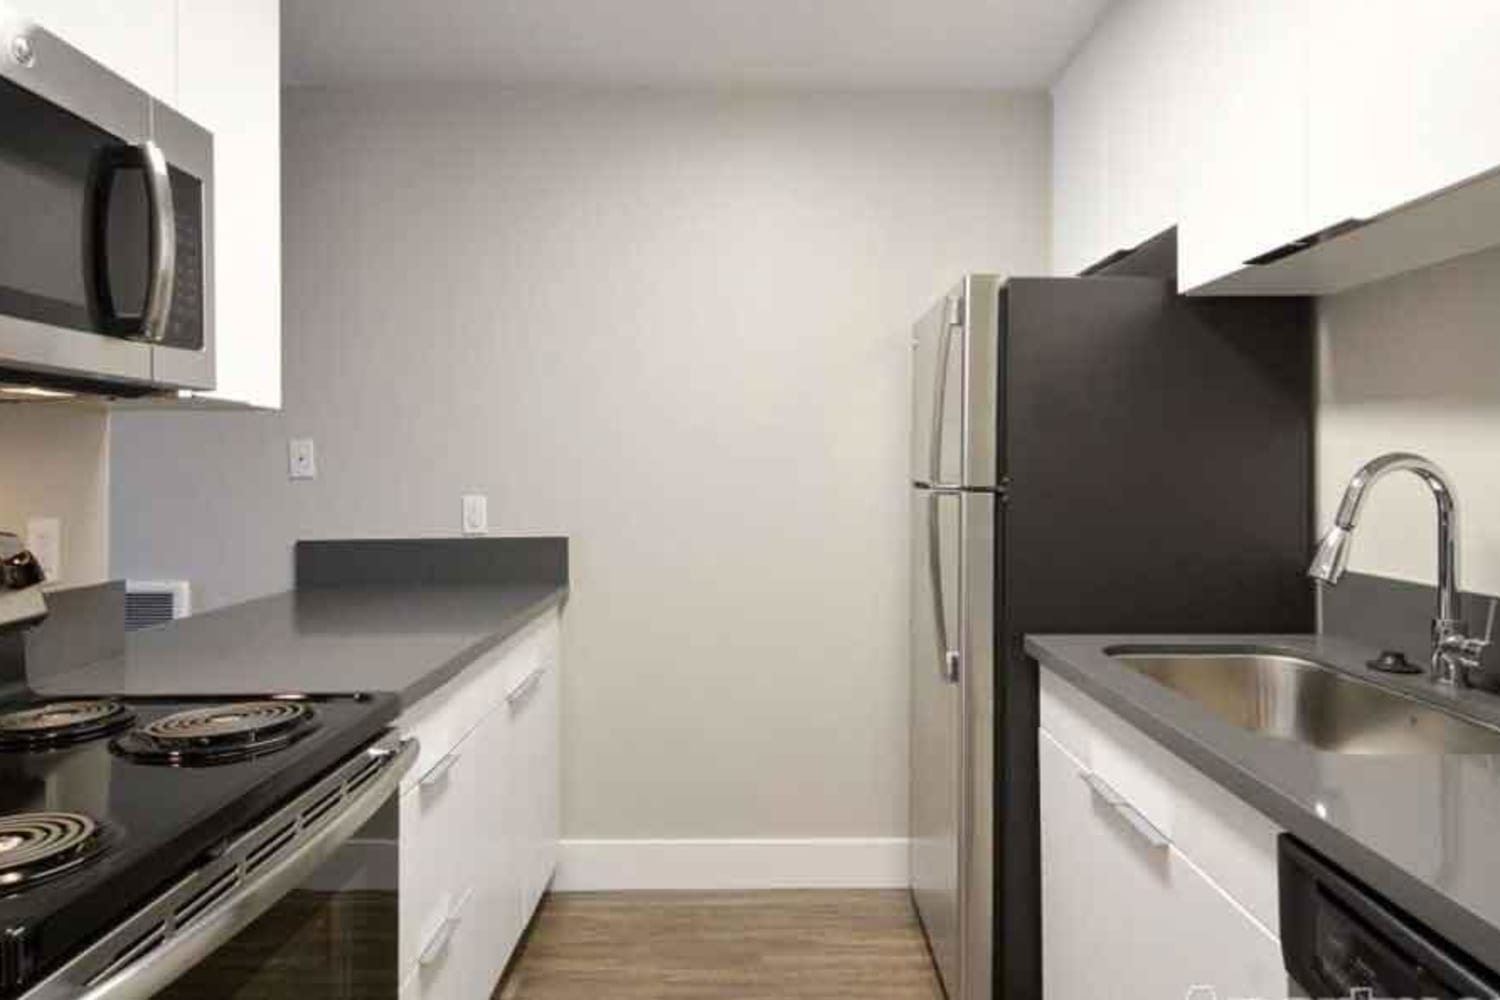 Harbor Cove Apartments in Foster City, California, offer kitchens with ample counter space